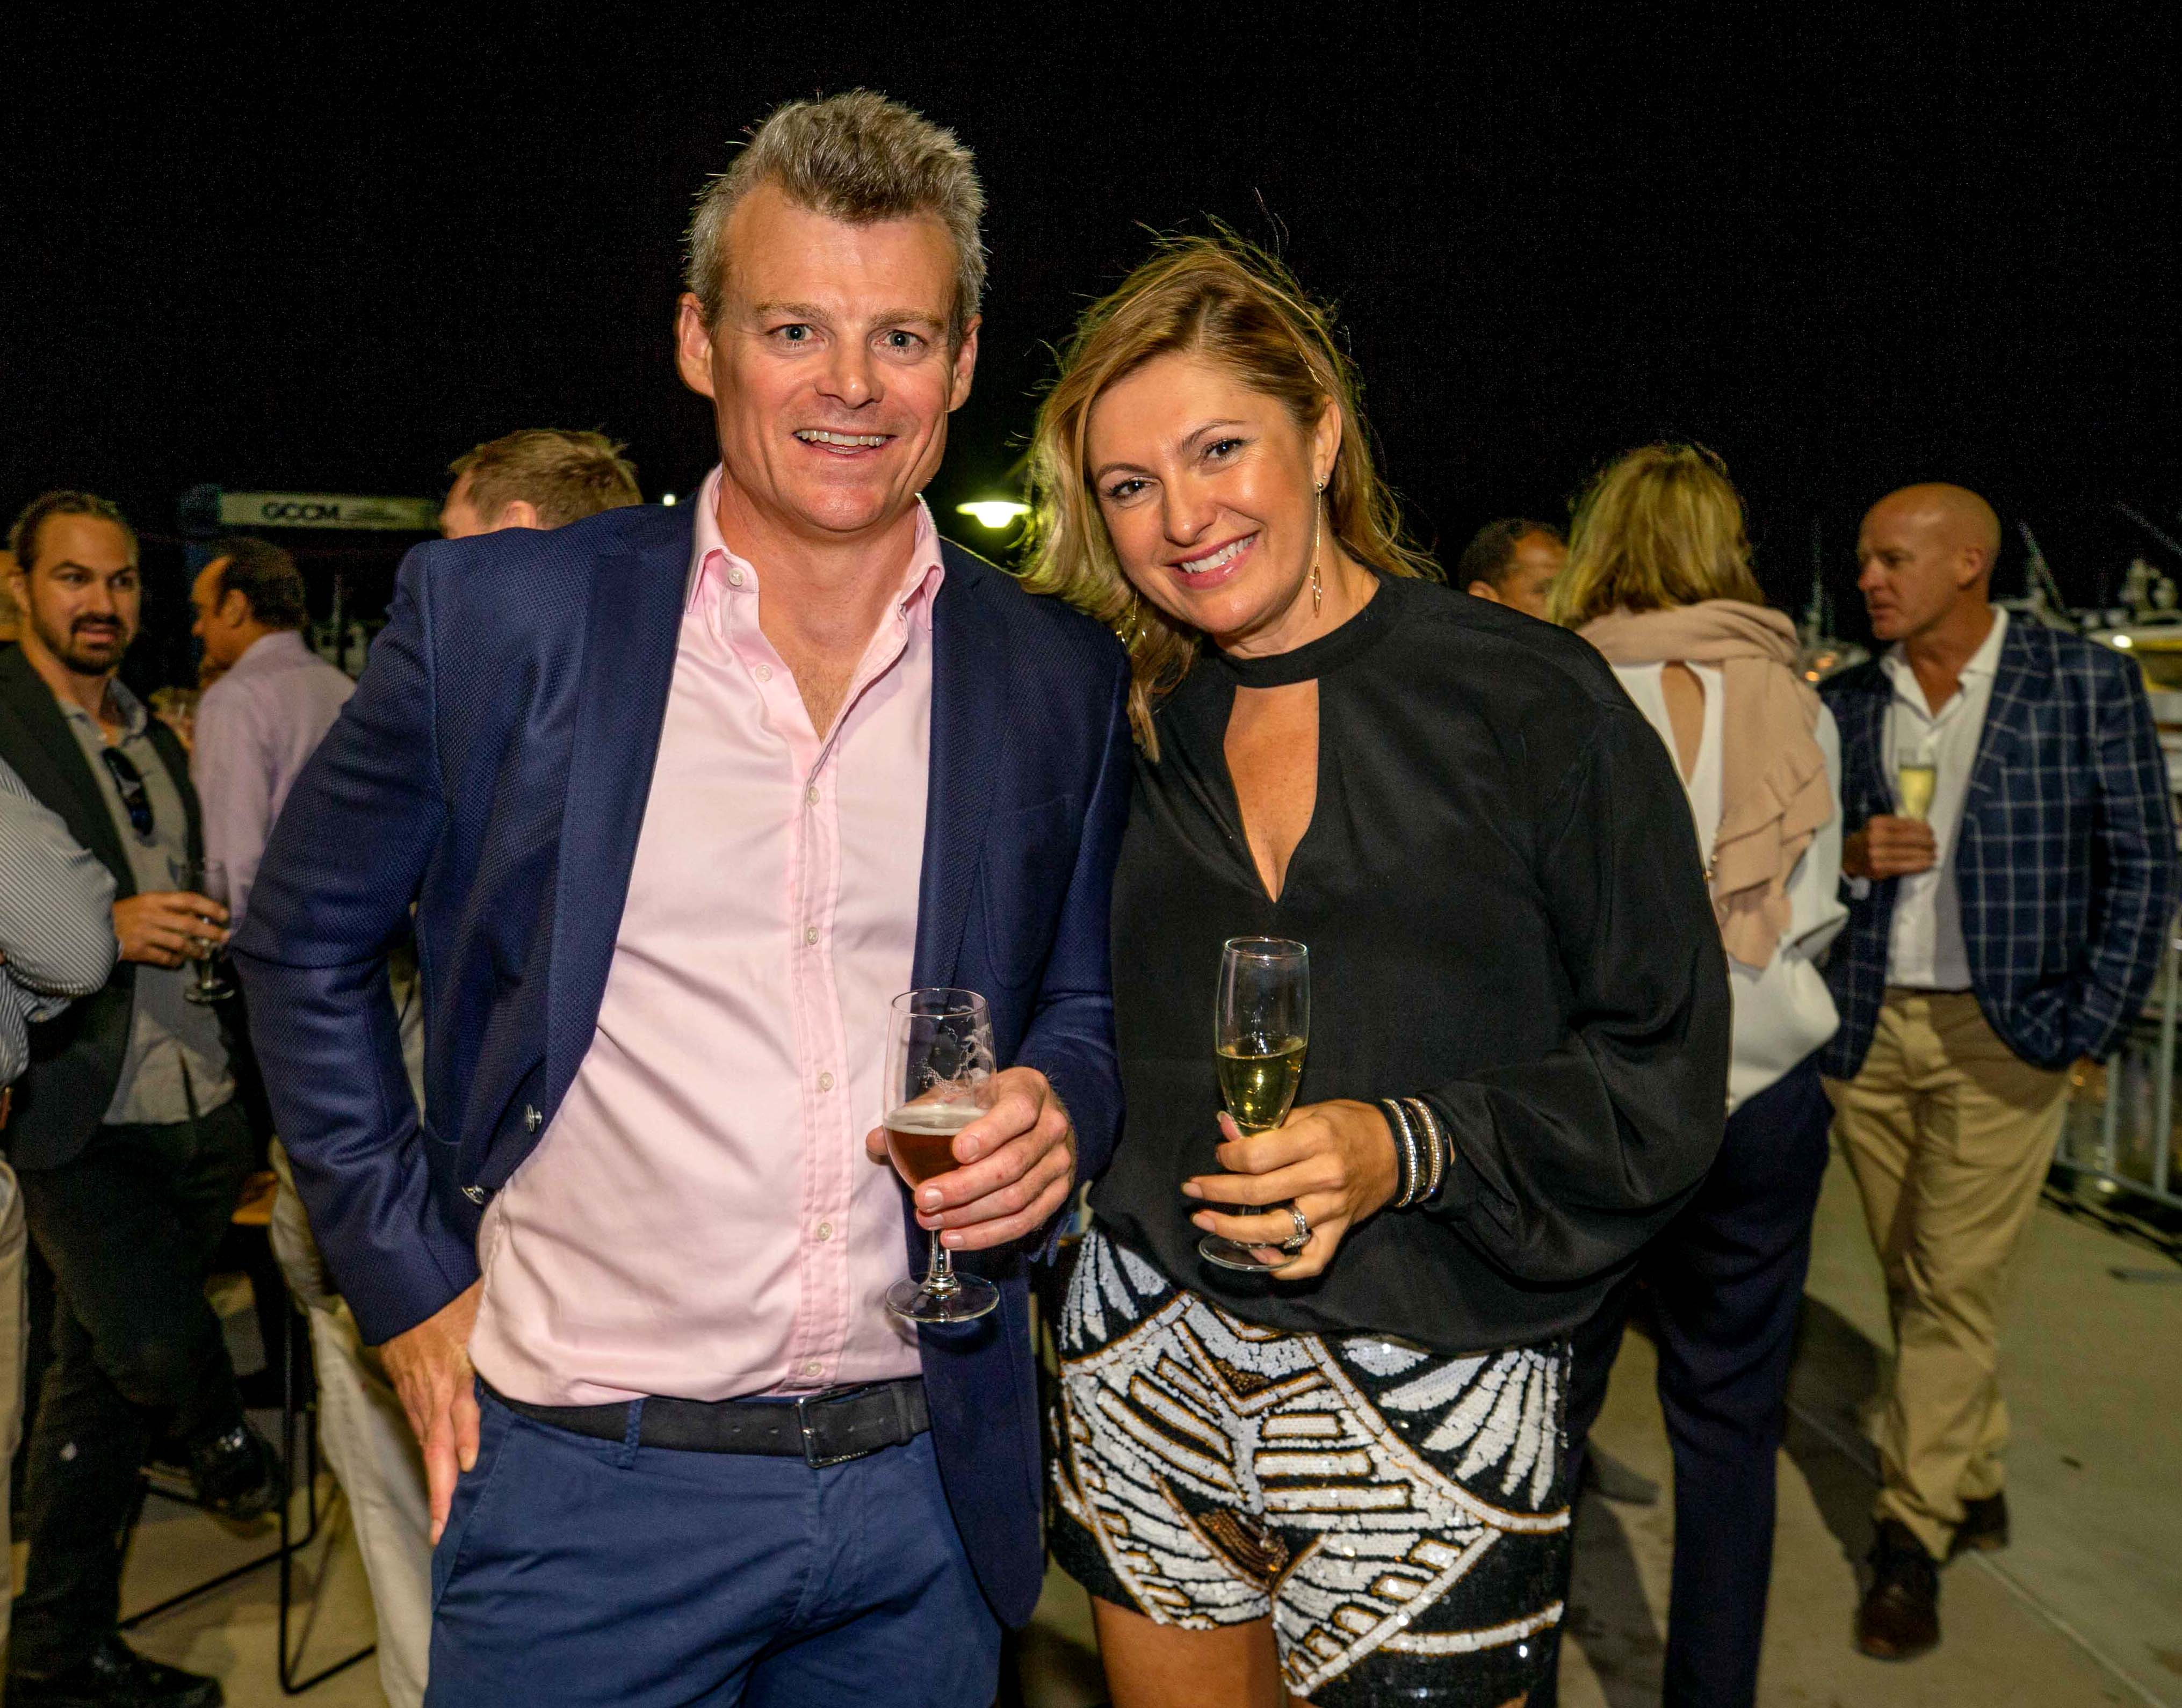 Guests of the VIP event of the Australian Superyacht Rendezvous 2018